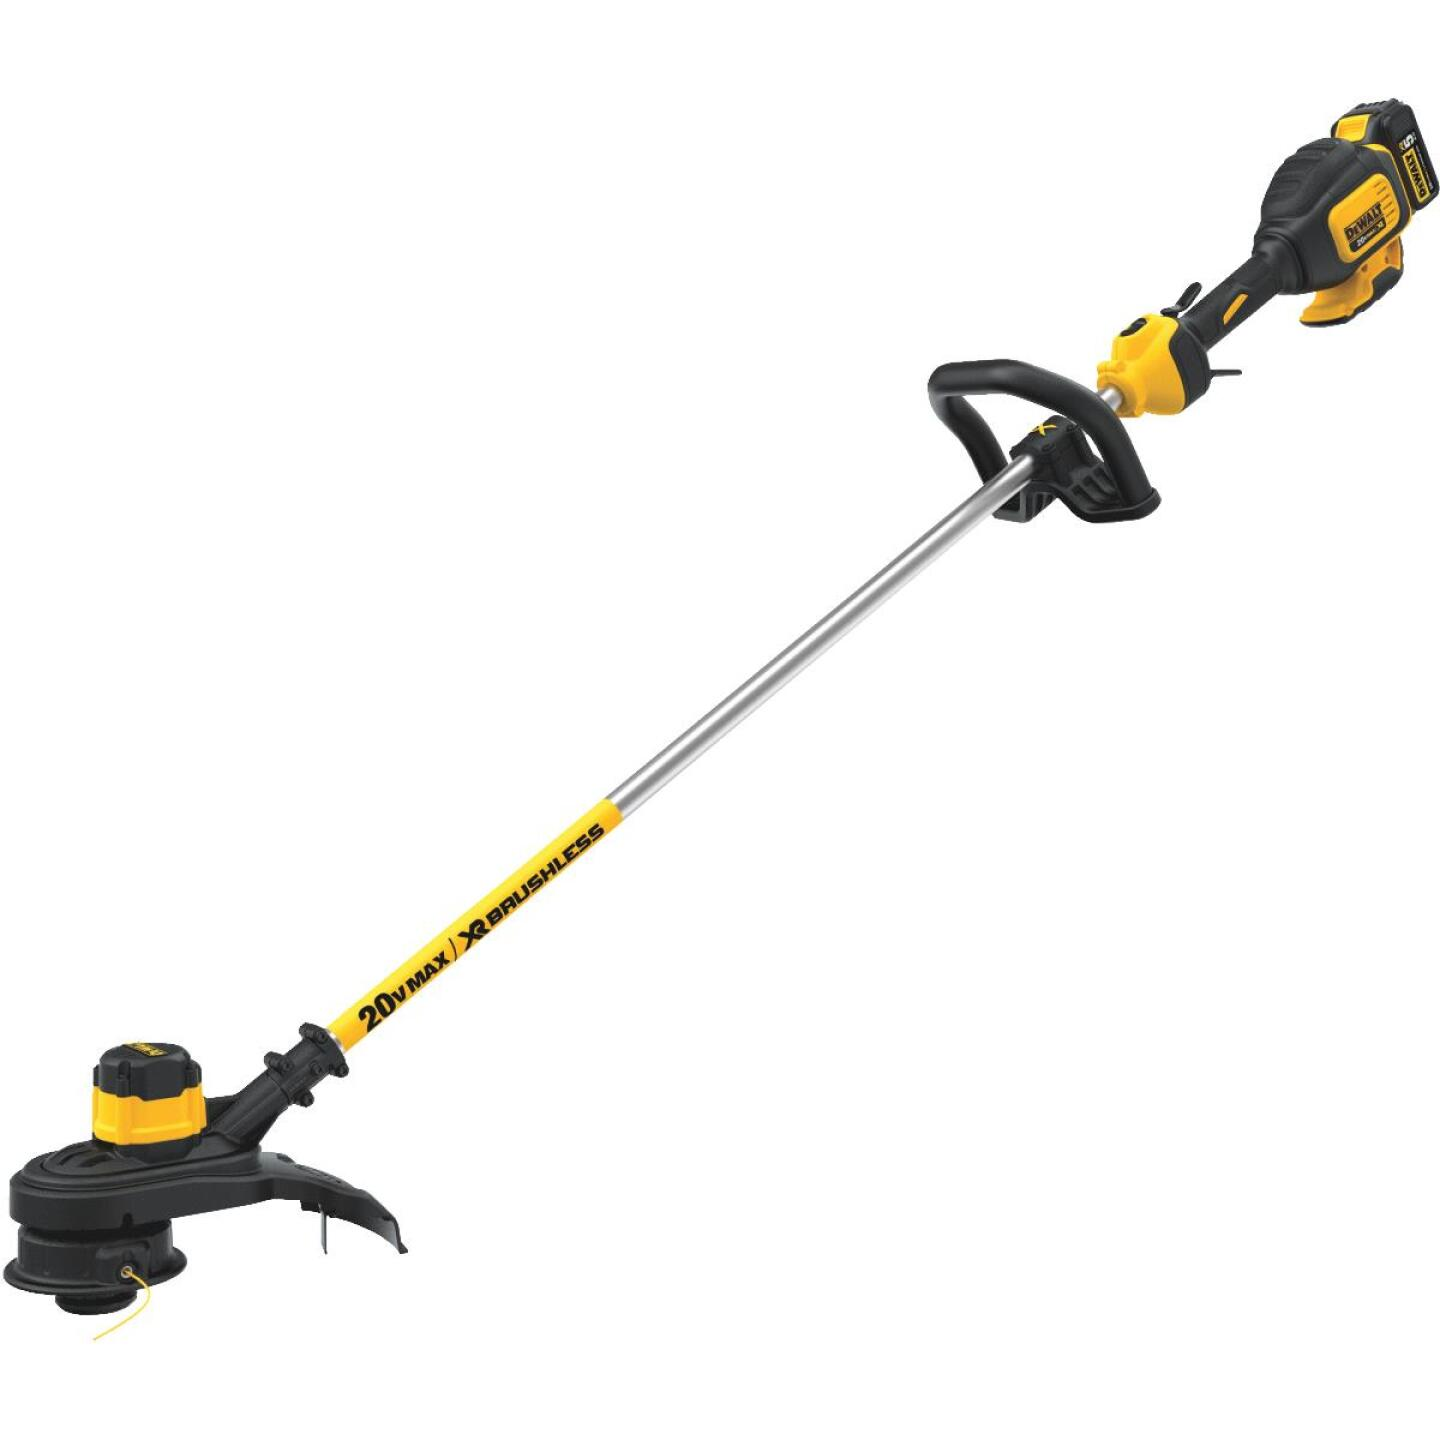 DeWalt 20V MAX 13 In. Lithium Ion Straight Cordless String Trimmer Image 1